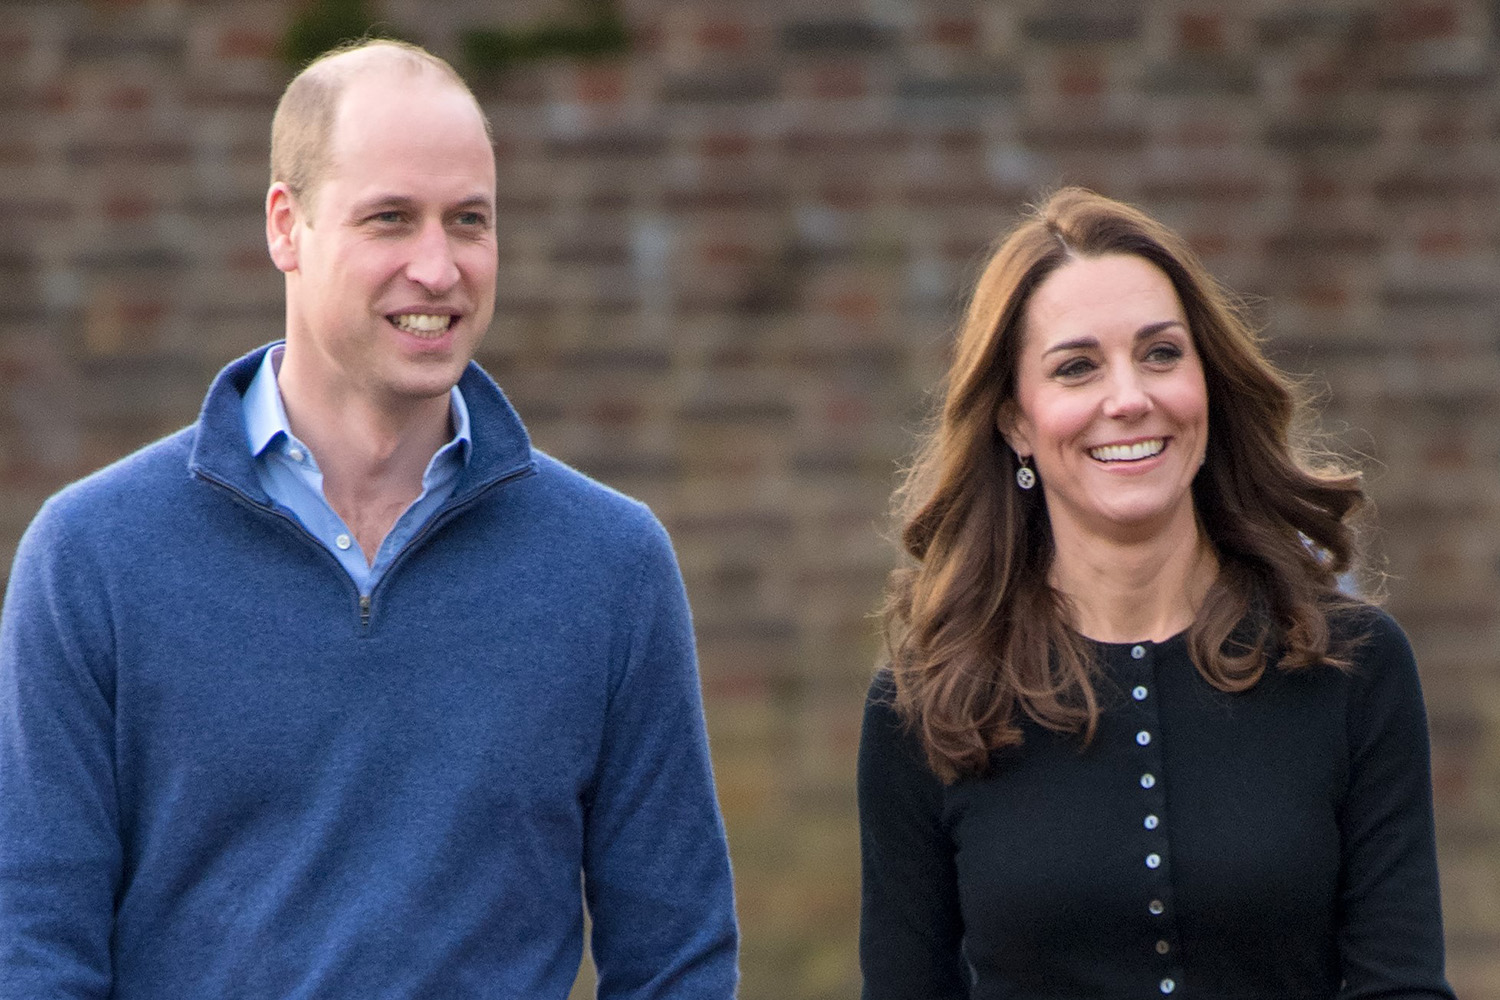 William and Kate celebrate ninth wedding anniversary with sweet post